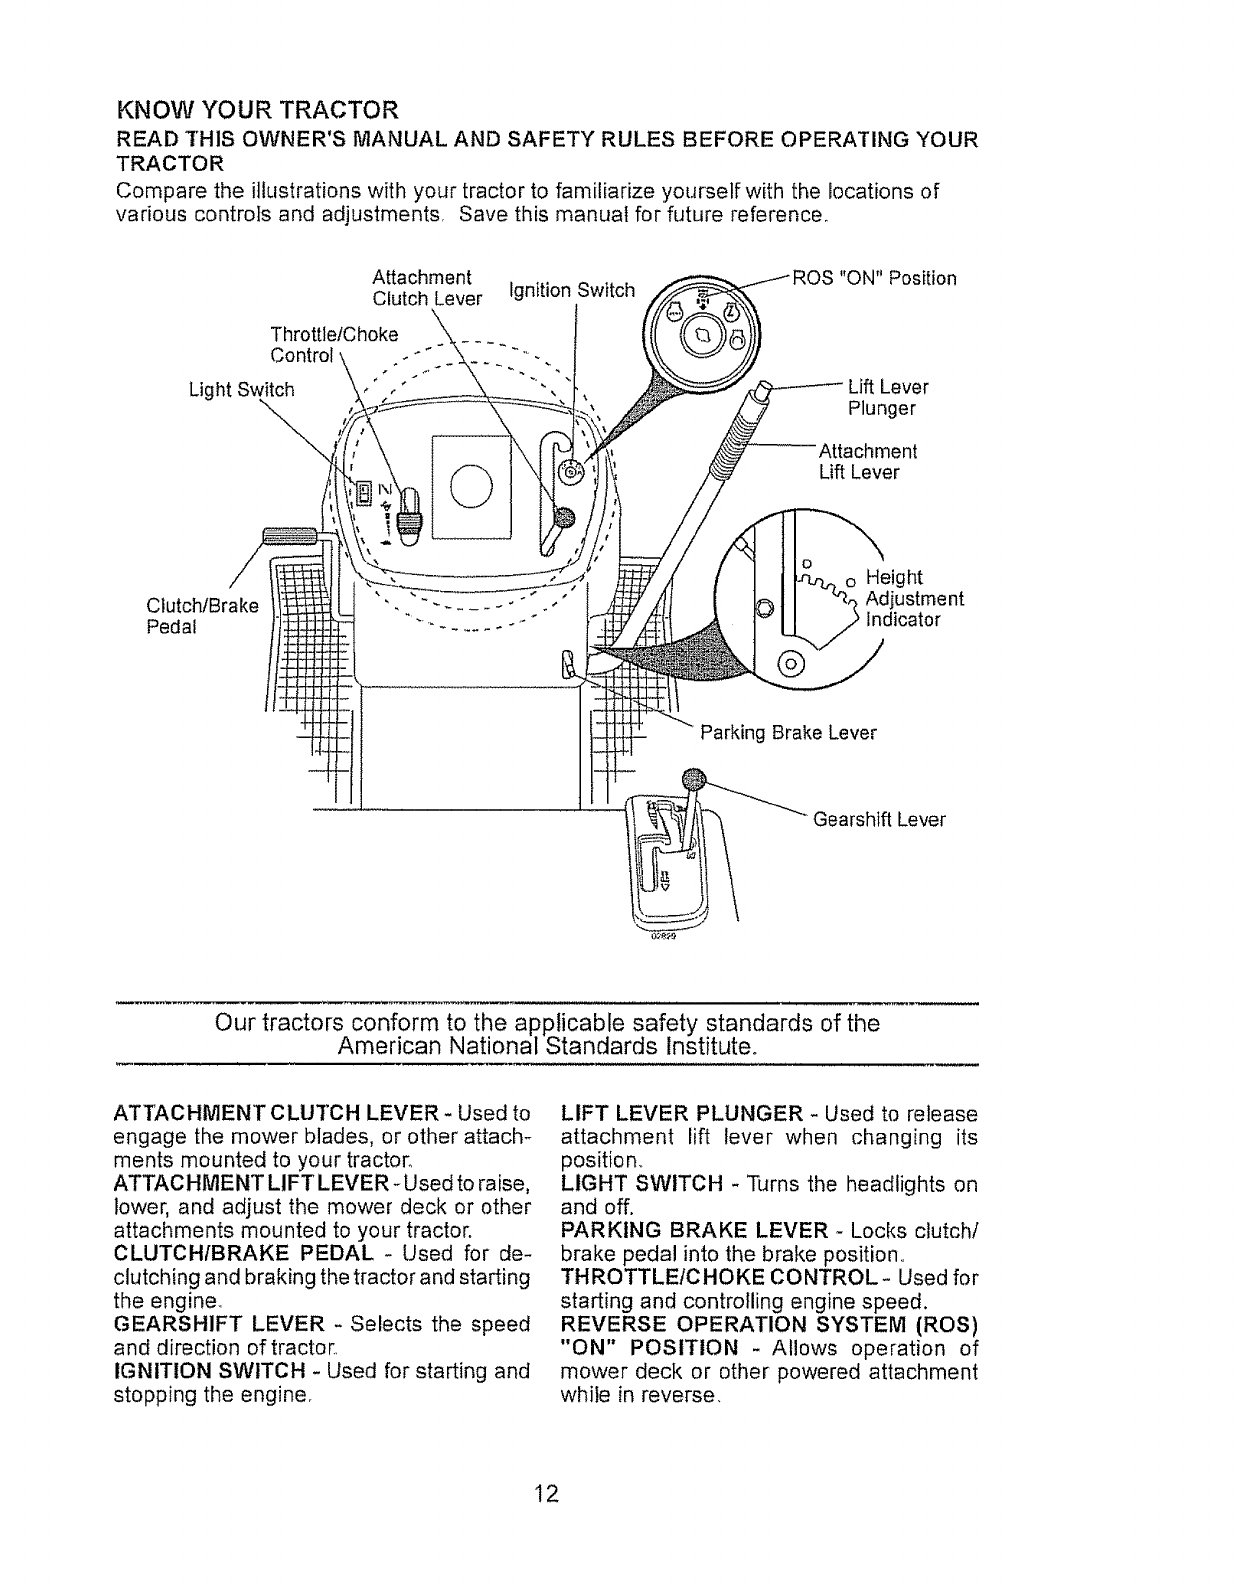 Clutch for user guide user manuals know your tractor array page 12 of craftsman lawn mower lts 1500 user guide manualsonline com rh lawnandgarden fandeluxe Gallery